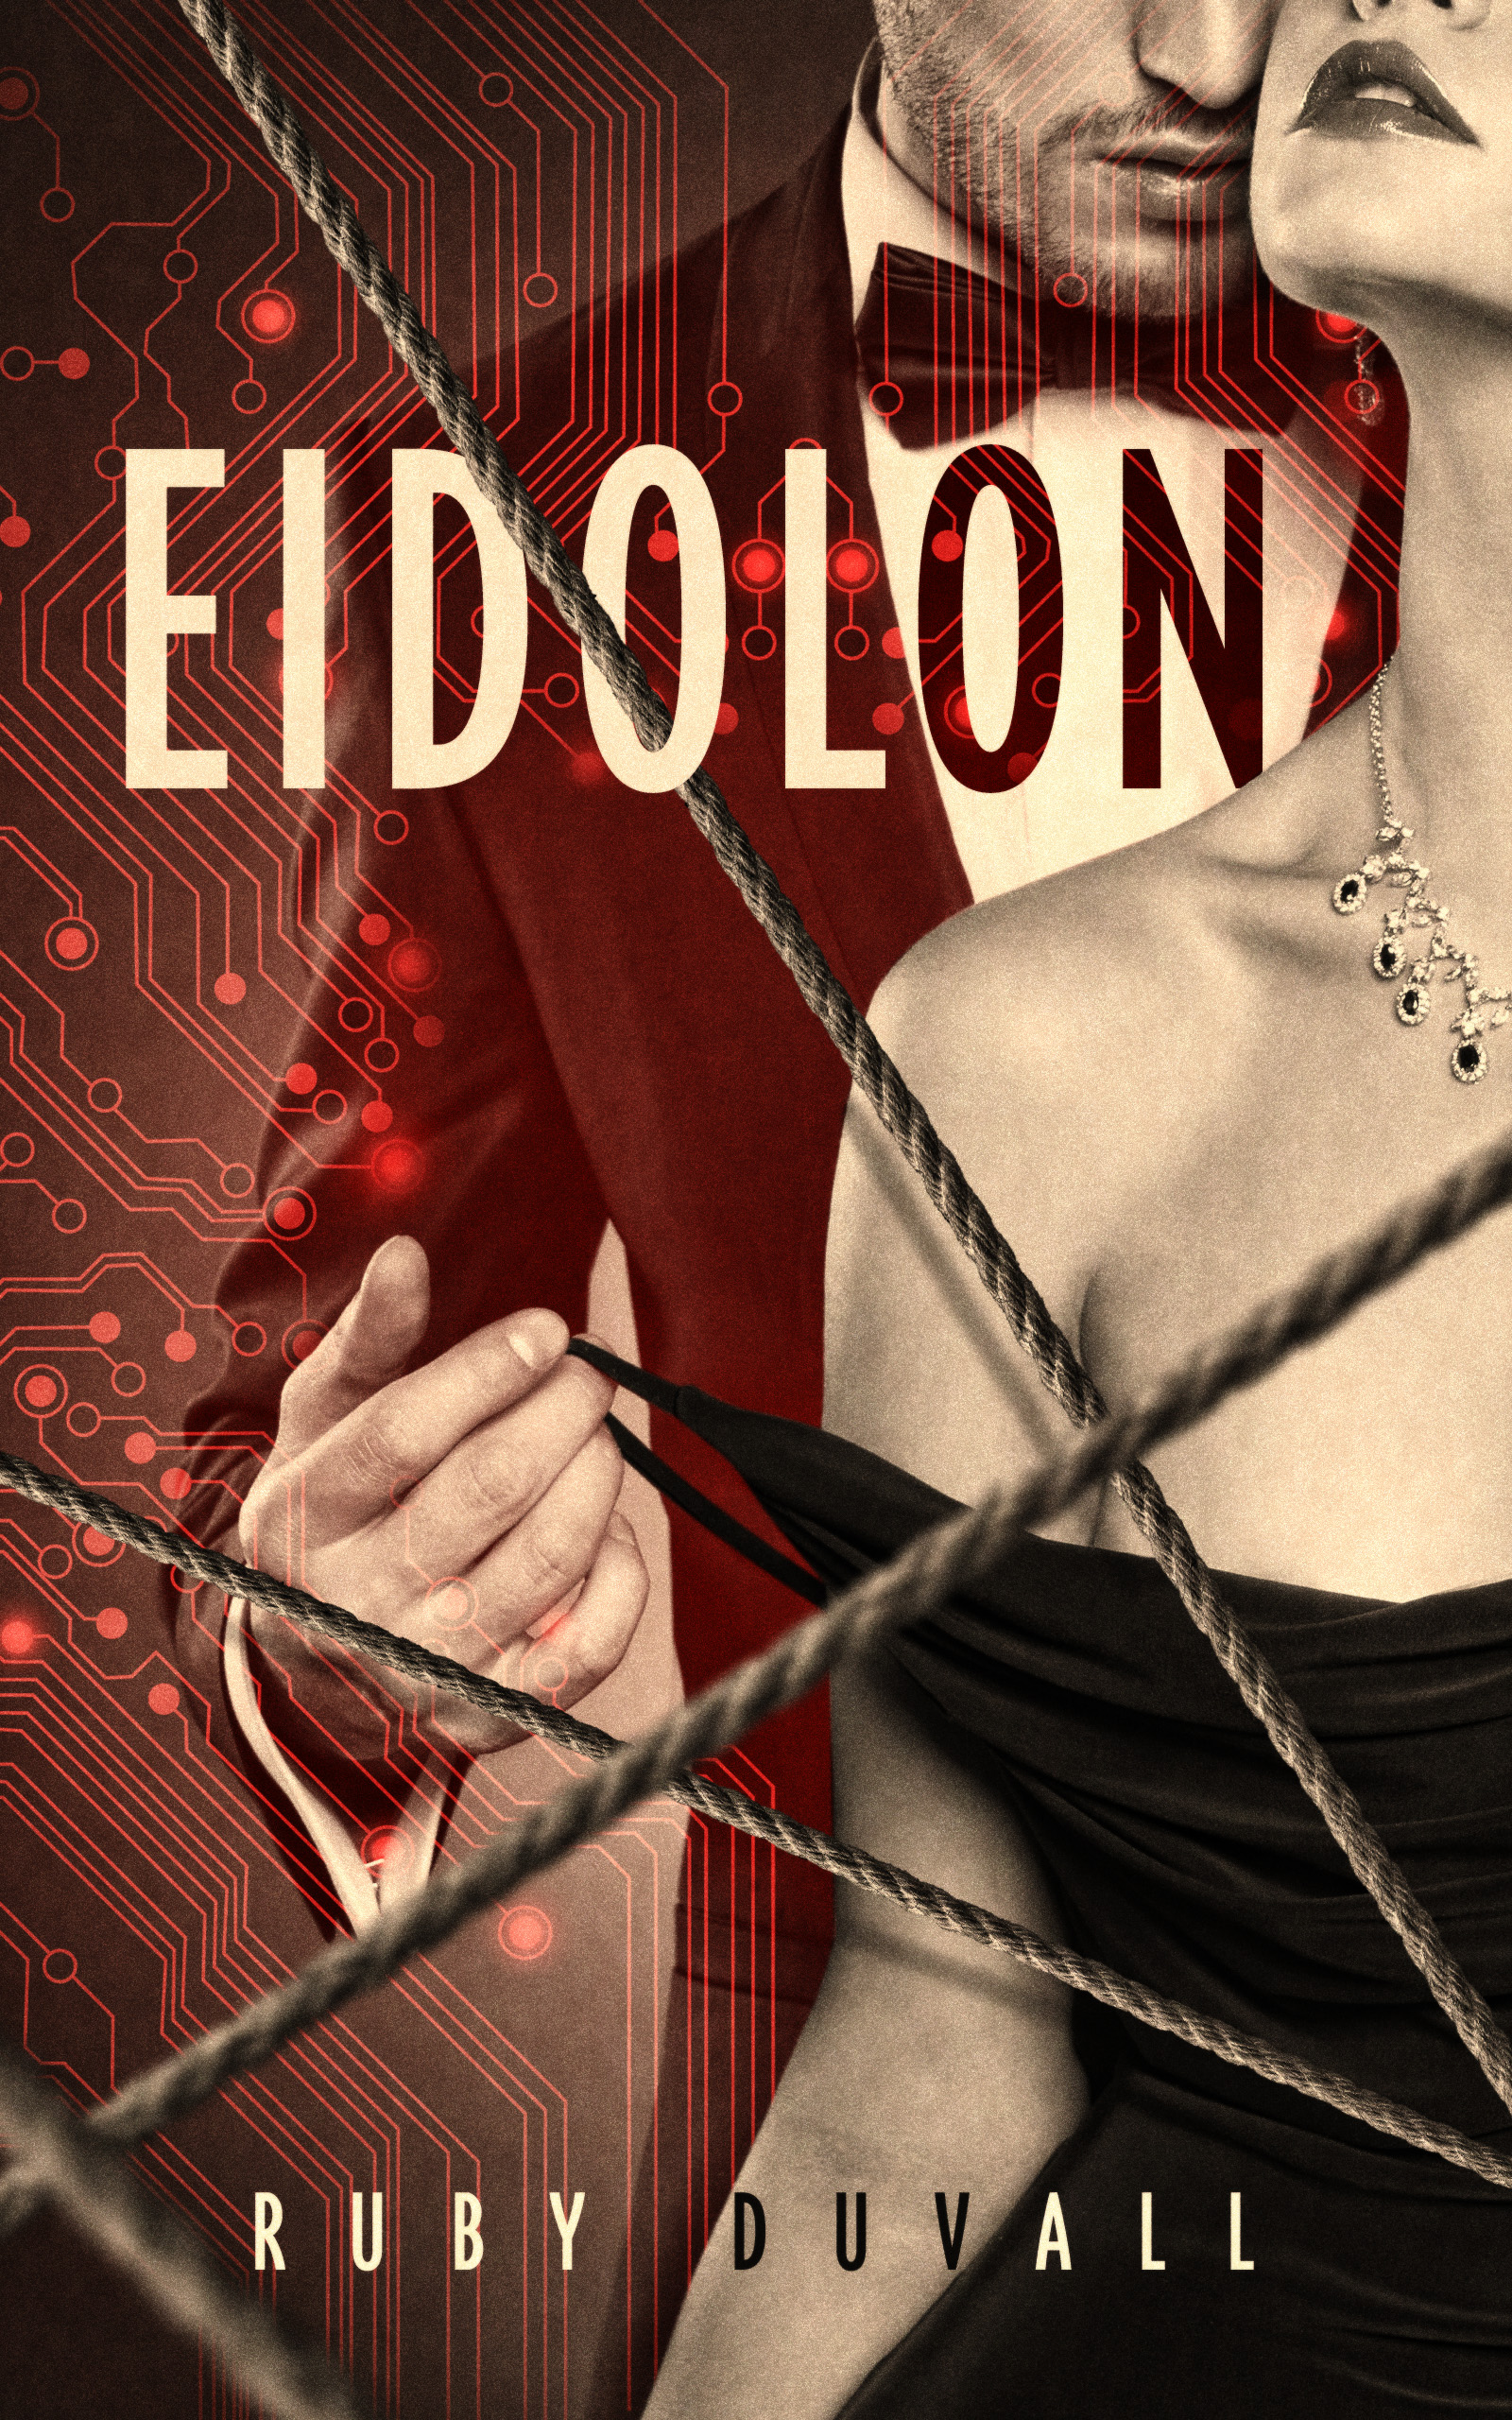 eidolon cover.jpg